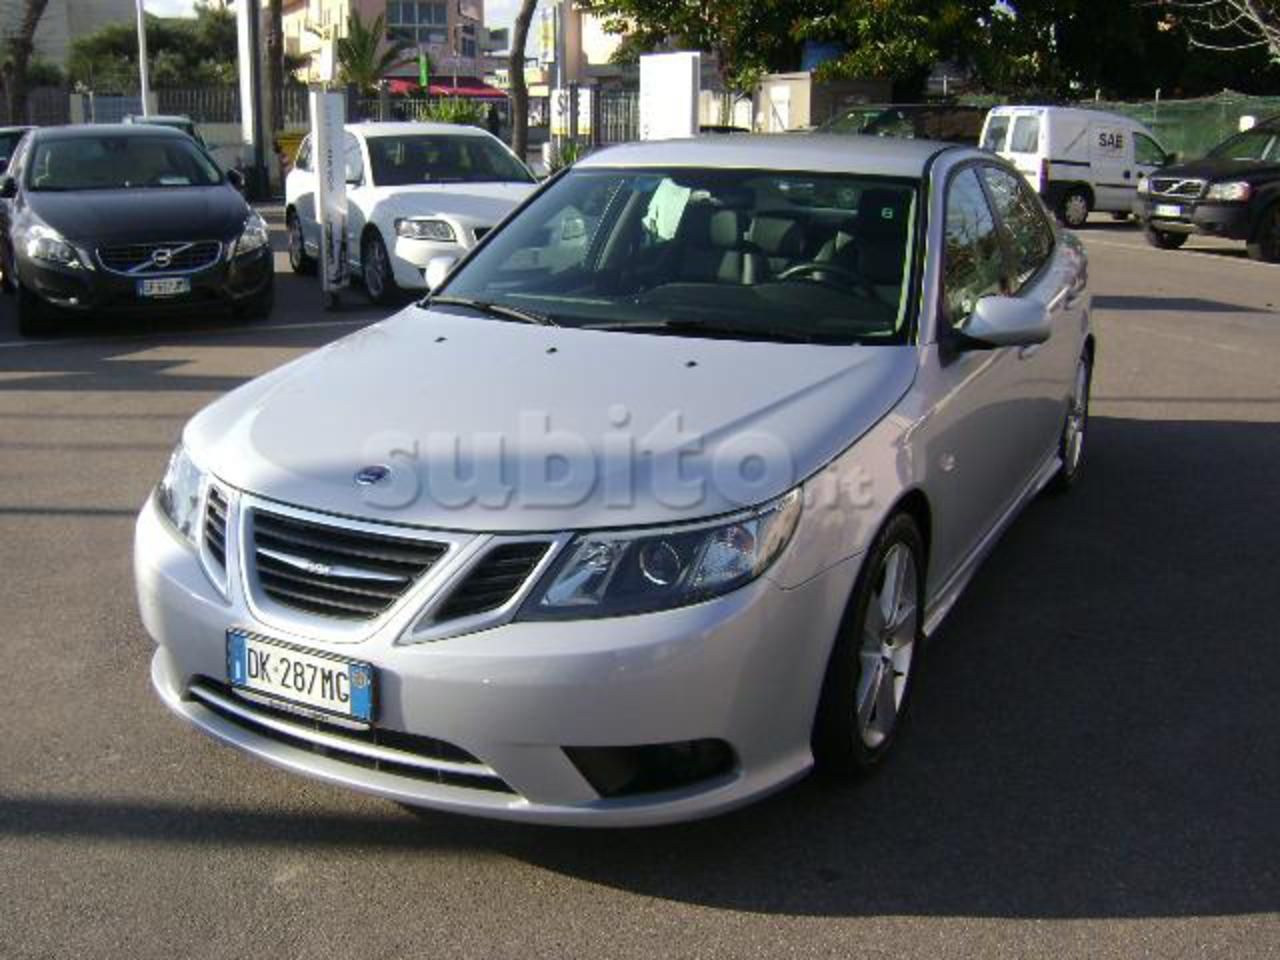 SAAB 9-5 22TD wagon. View Download Wallpaper. 640x480. Comments